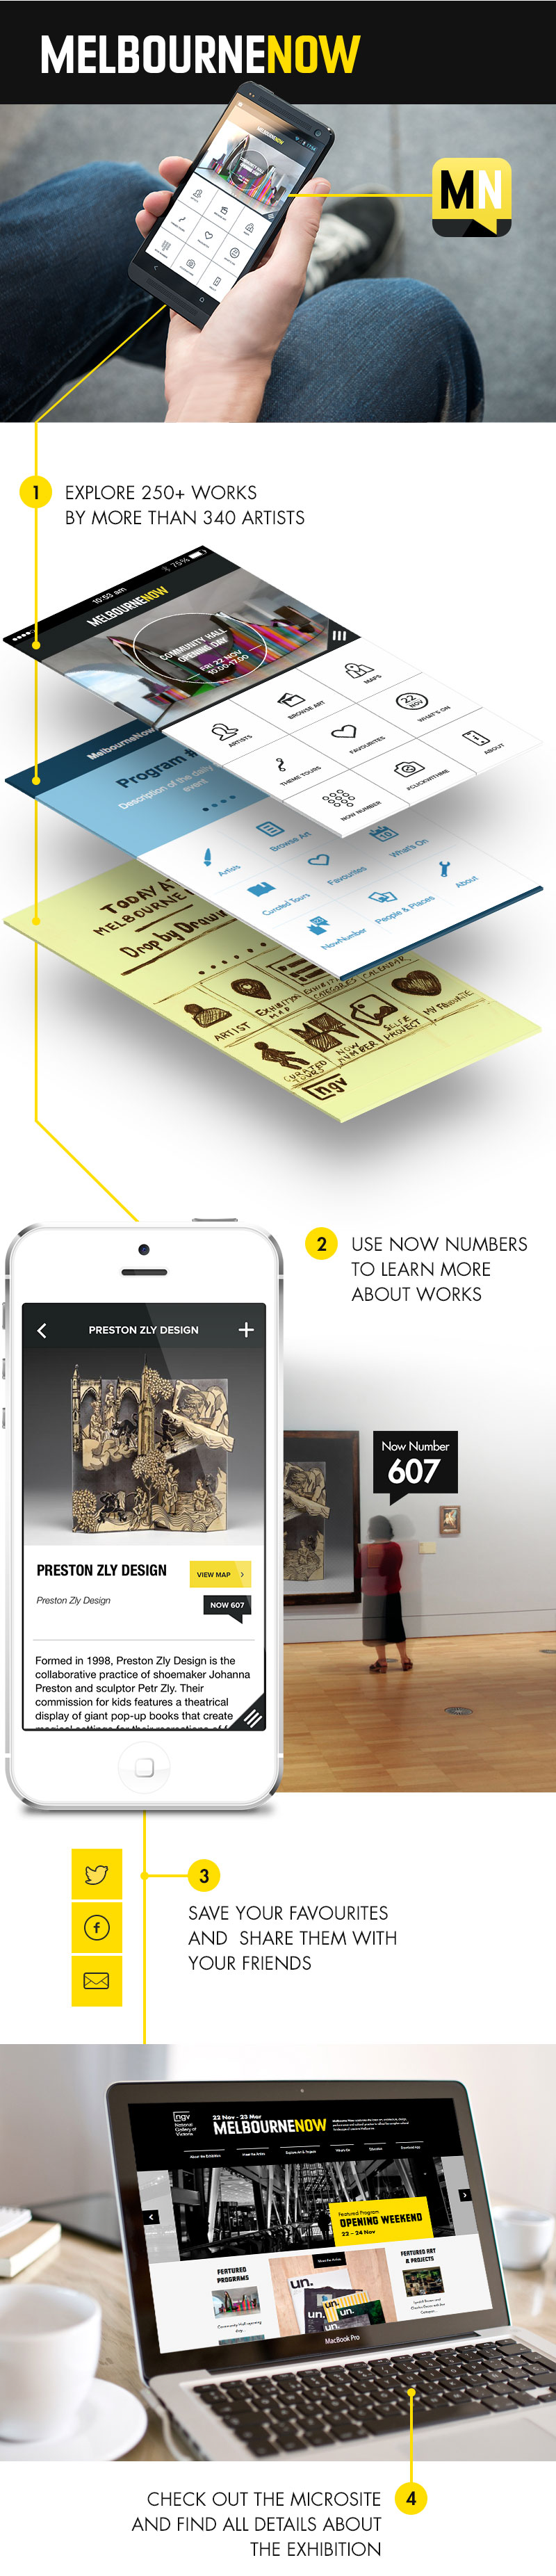 NGV MelbourneNow Responsive website, Android and iOS apps